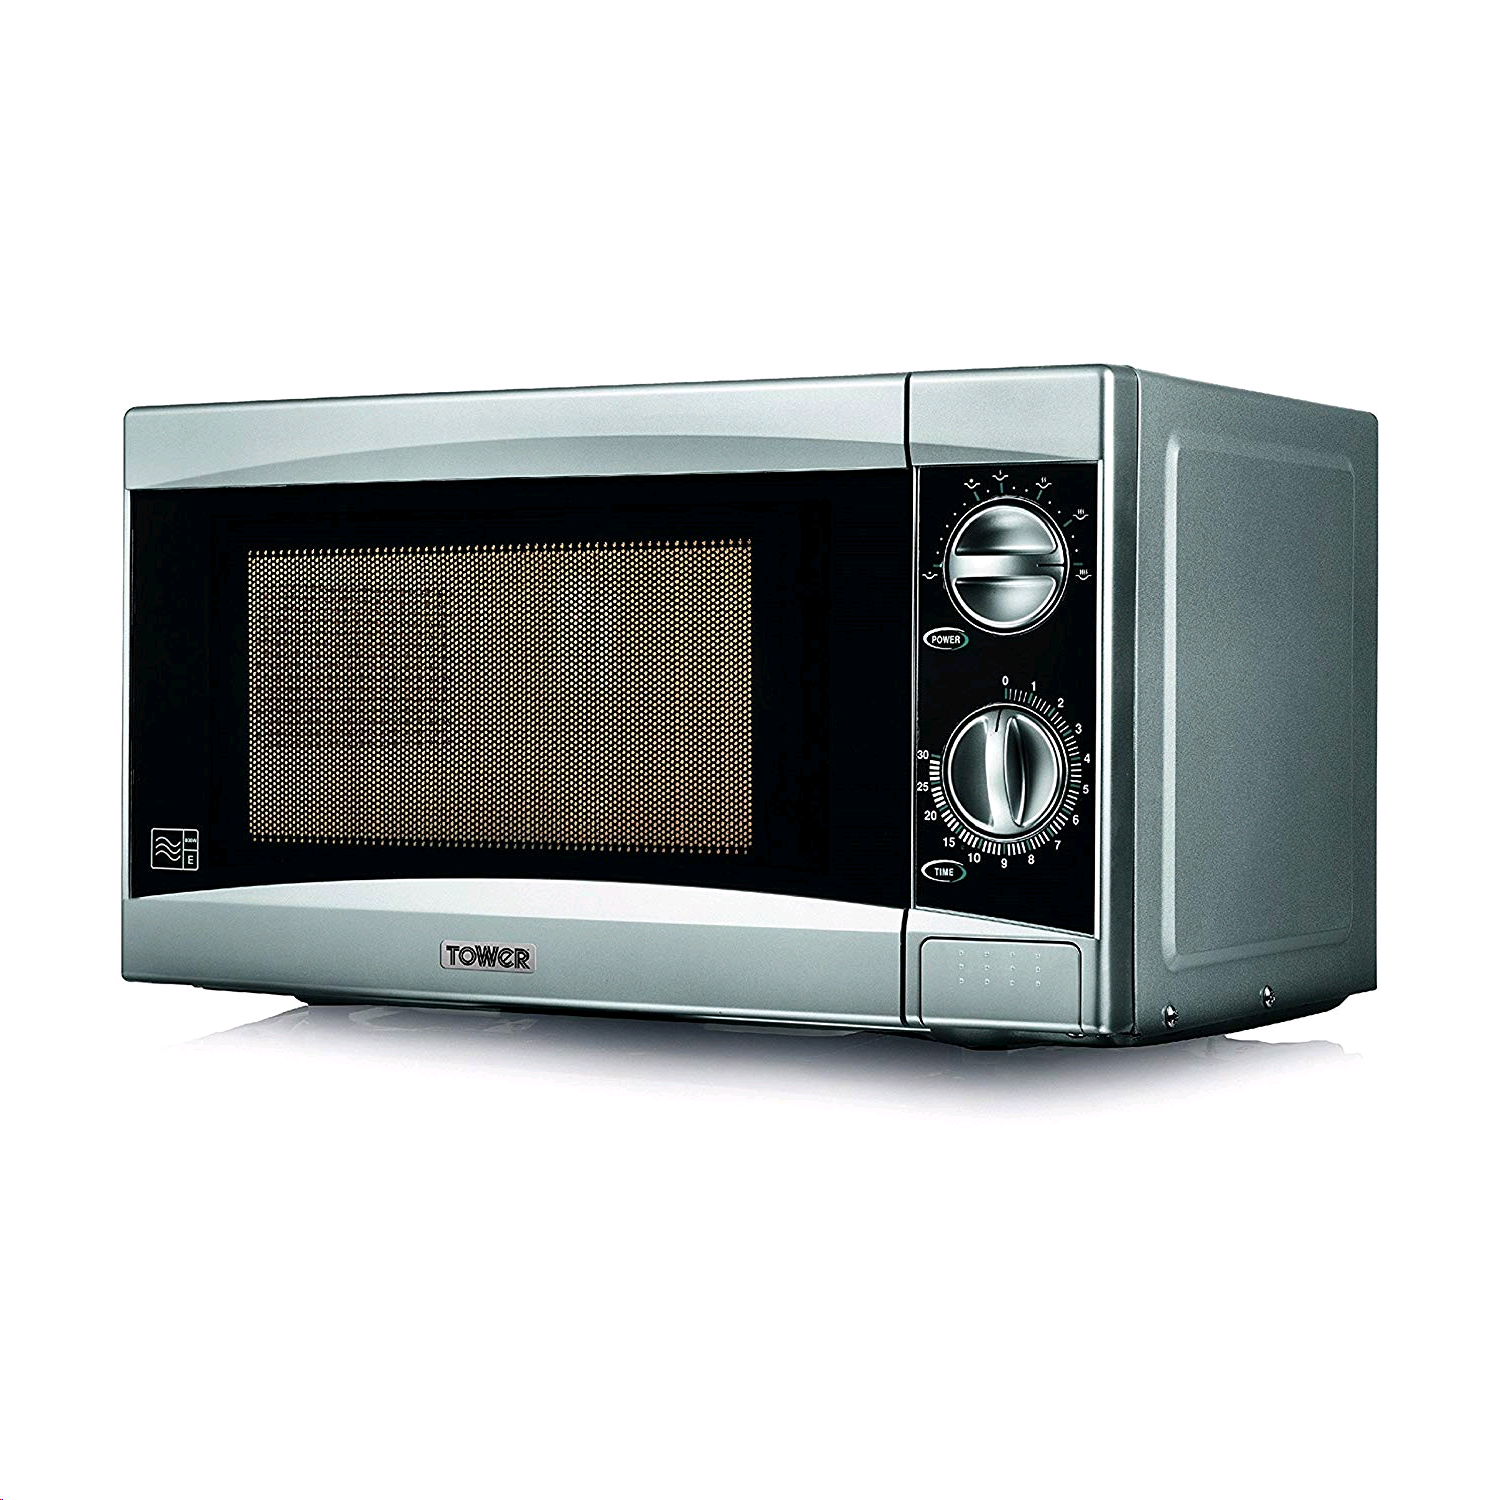 Tower Microwave 800w Manual Silver